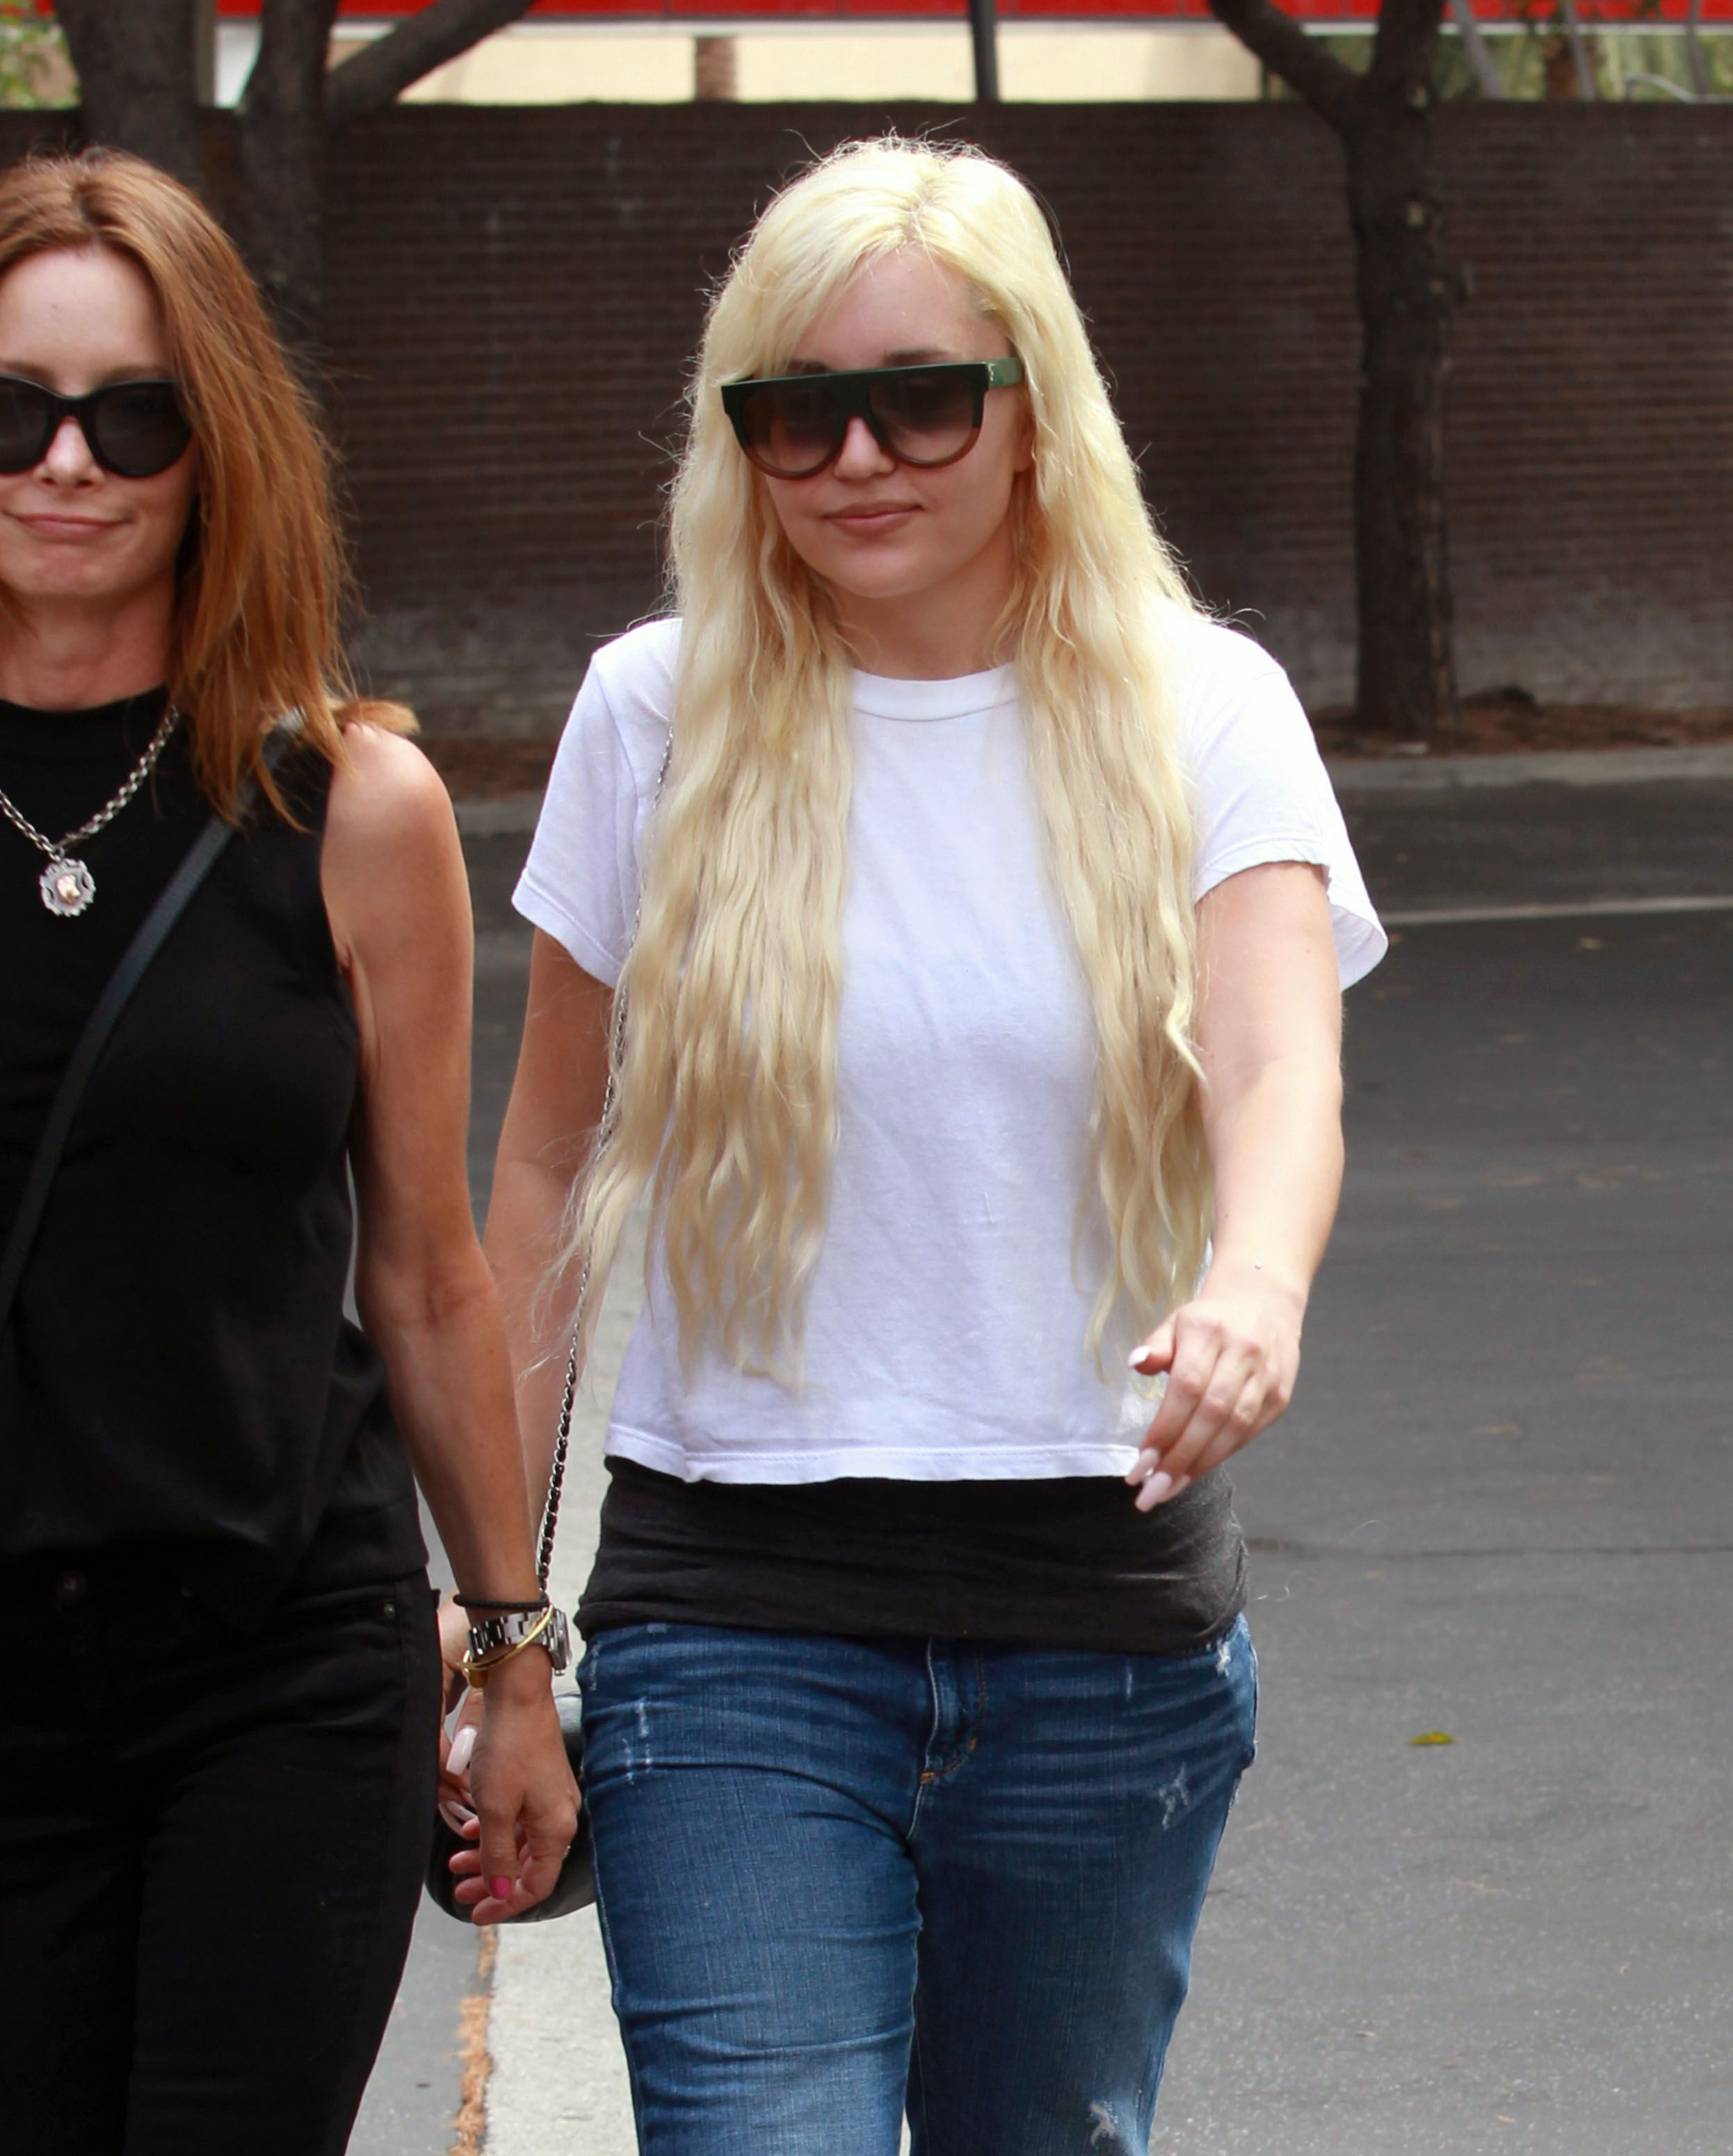 Amanda Bynes Shares a First Look at Her Mysterious Fiancé on Instagram